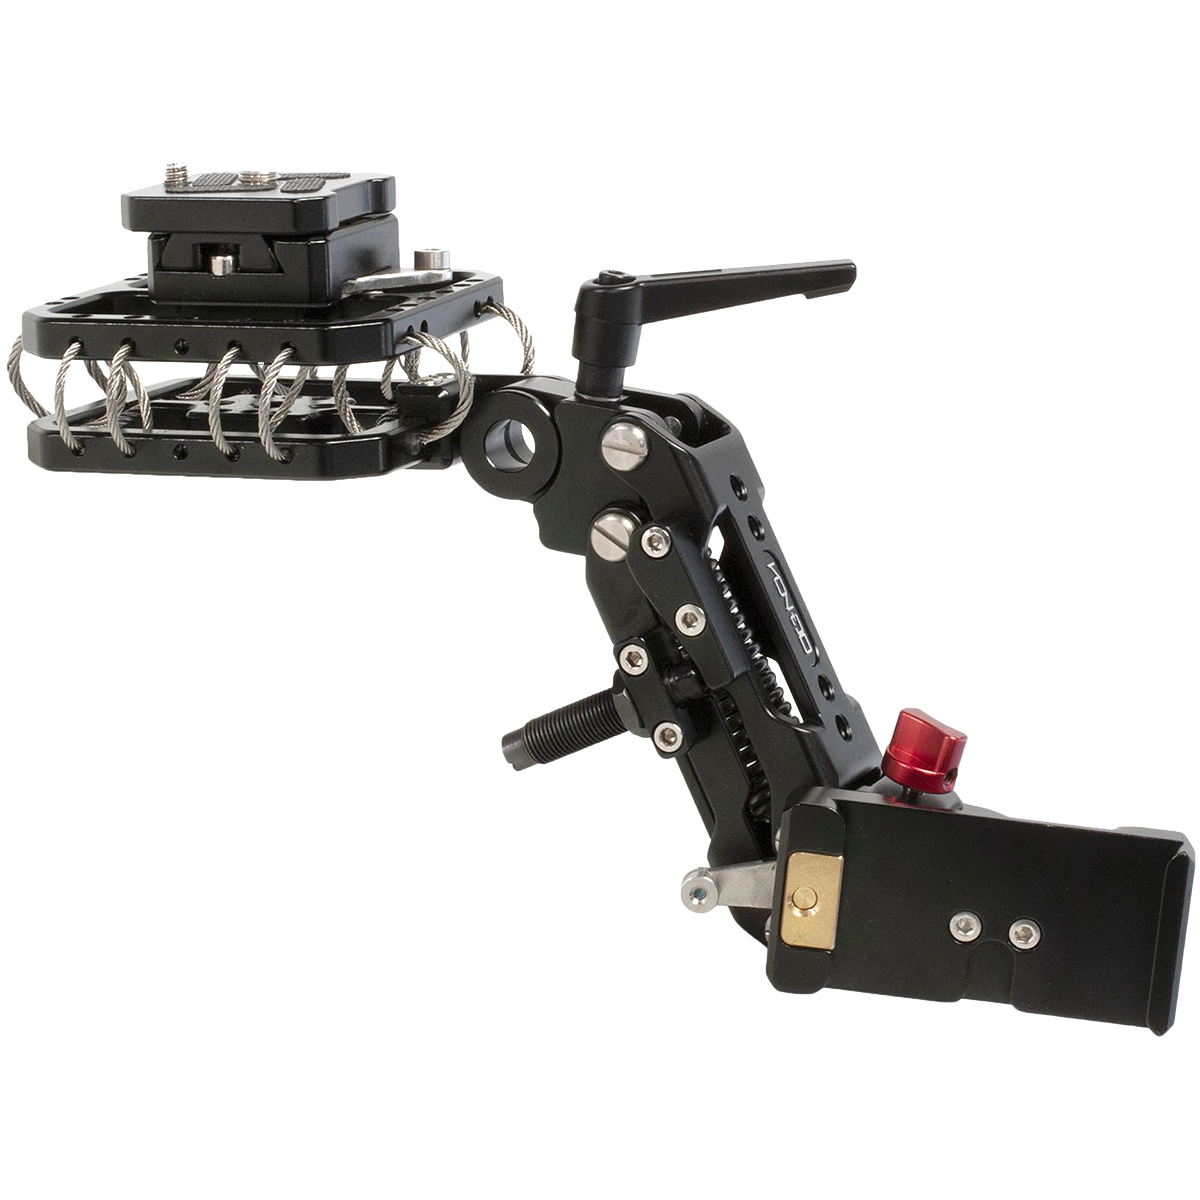 Camera support arm